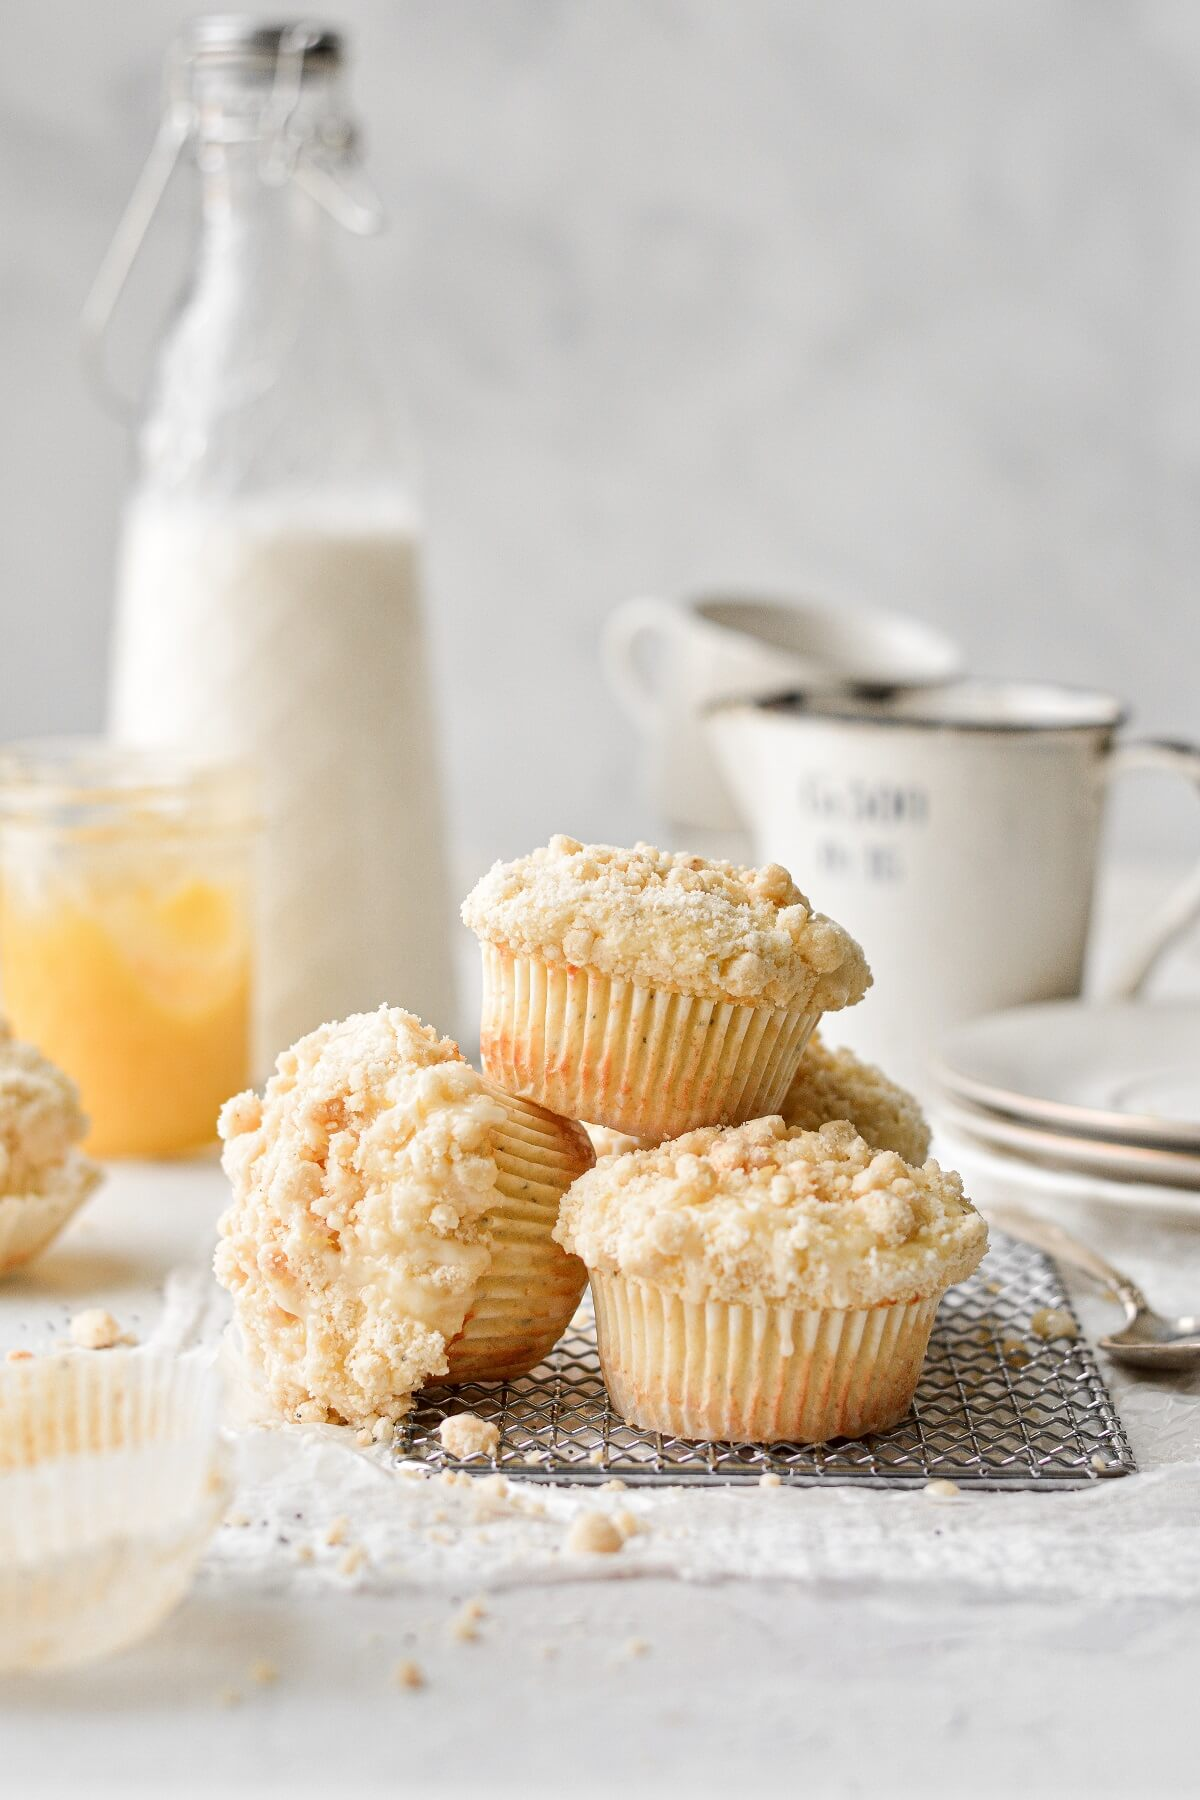 Lemon poppy seed crumb muffins, arranged on a cooling rack.